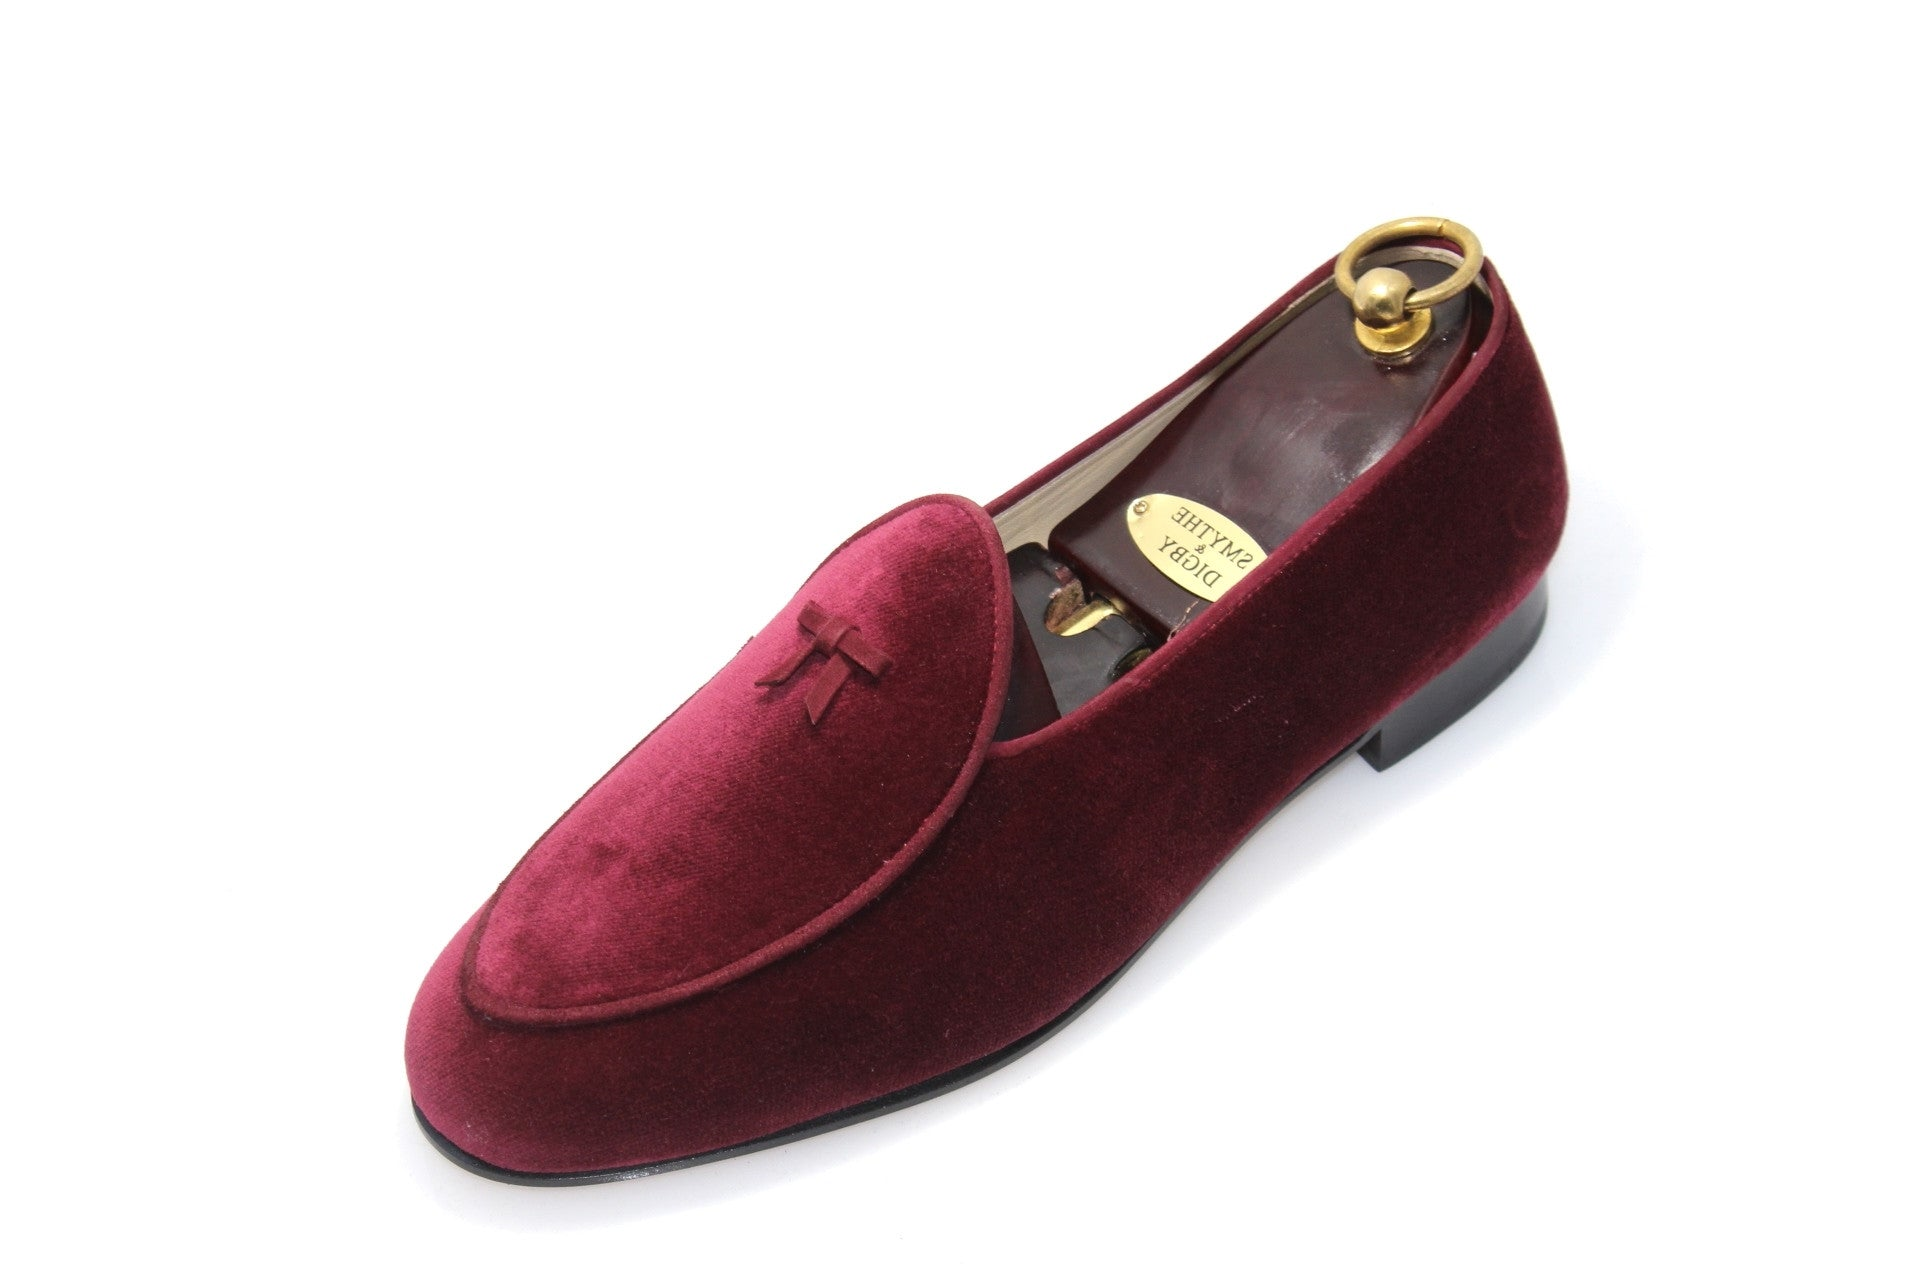 Smythe & Digby Custom Grade Men's Belgian Slipper Wine Burgundy Velvet Loafer